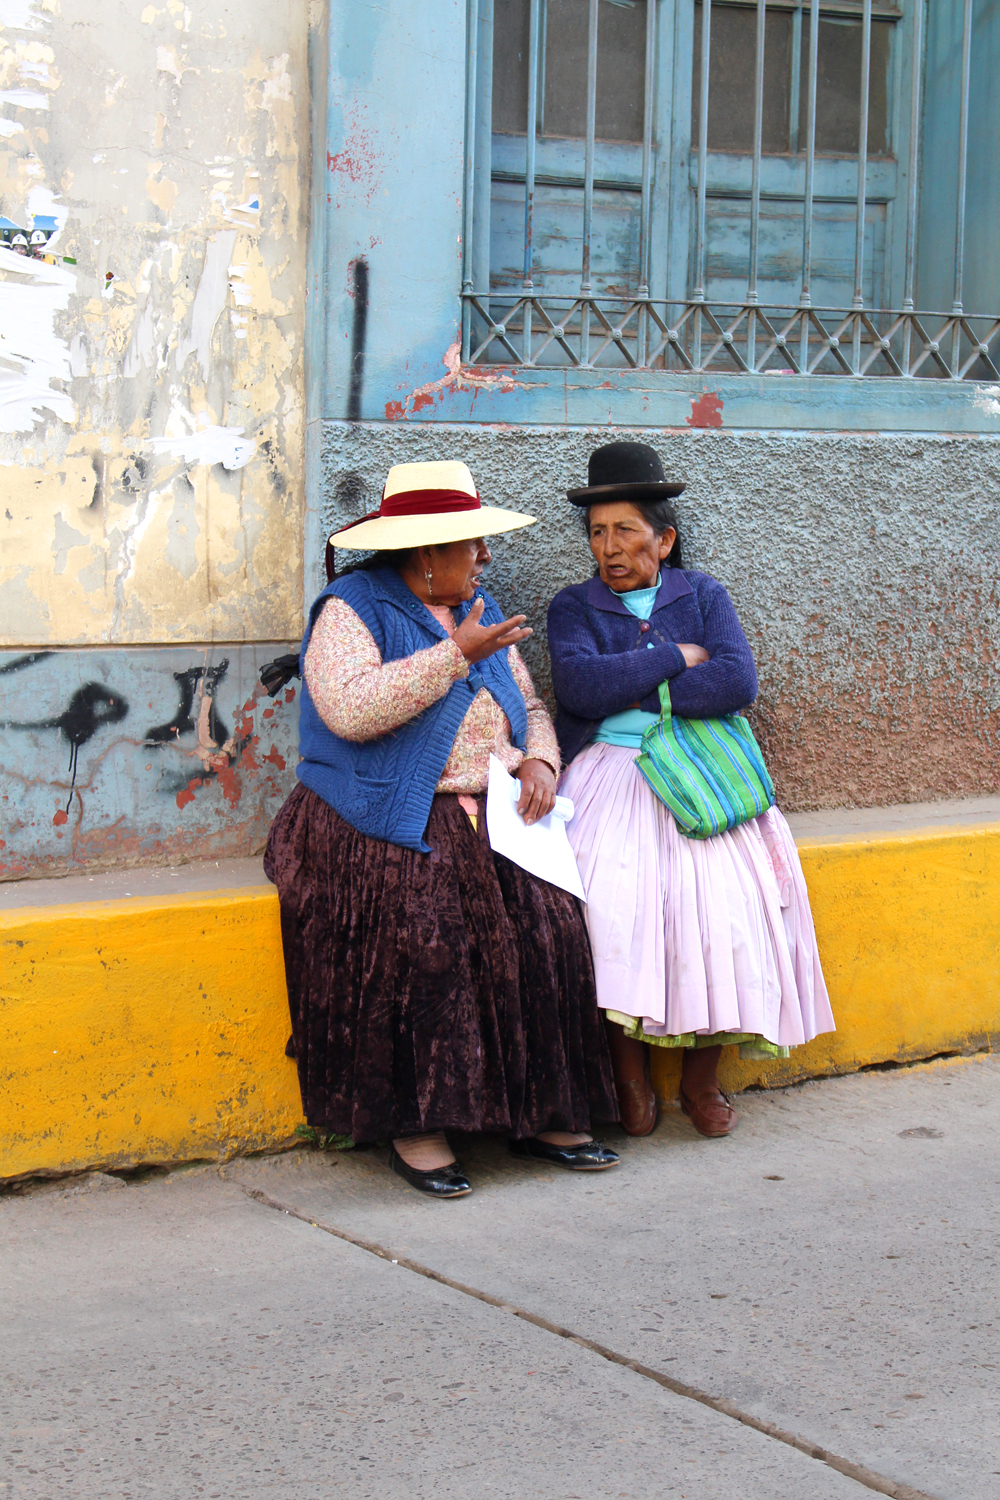 Traditional dress in Puno, Peru - travel blog